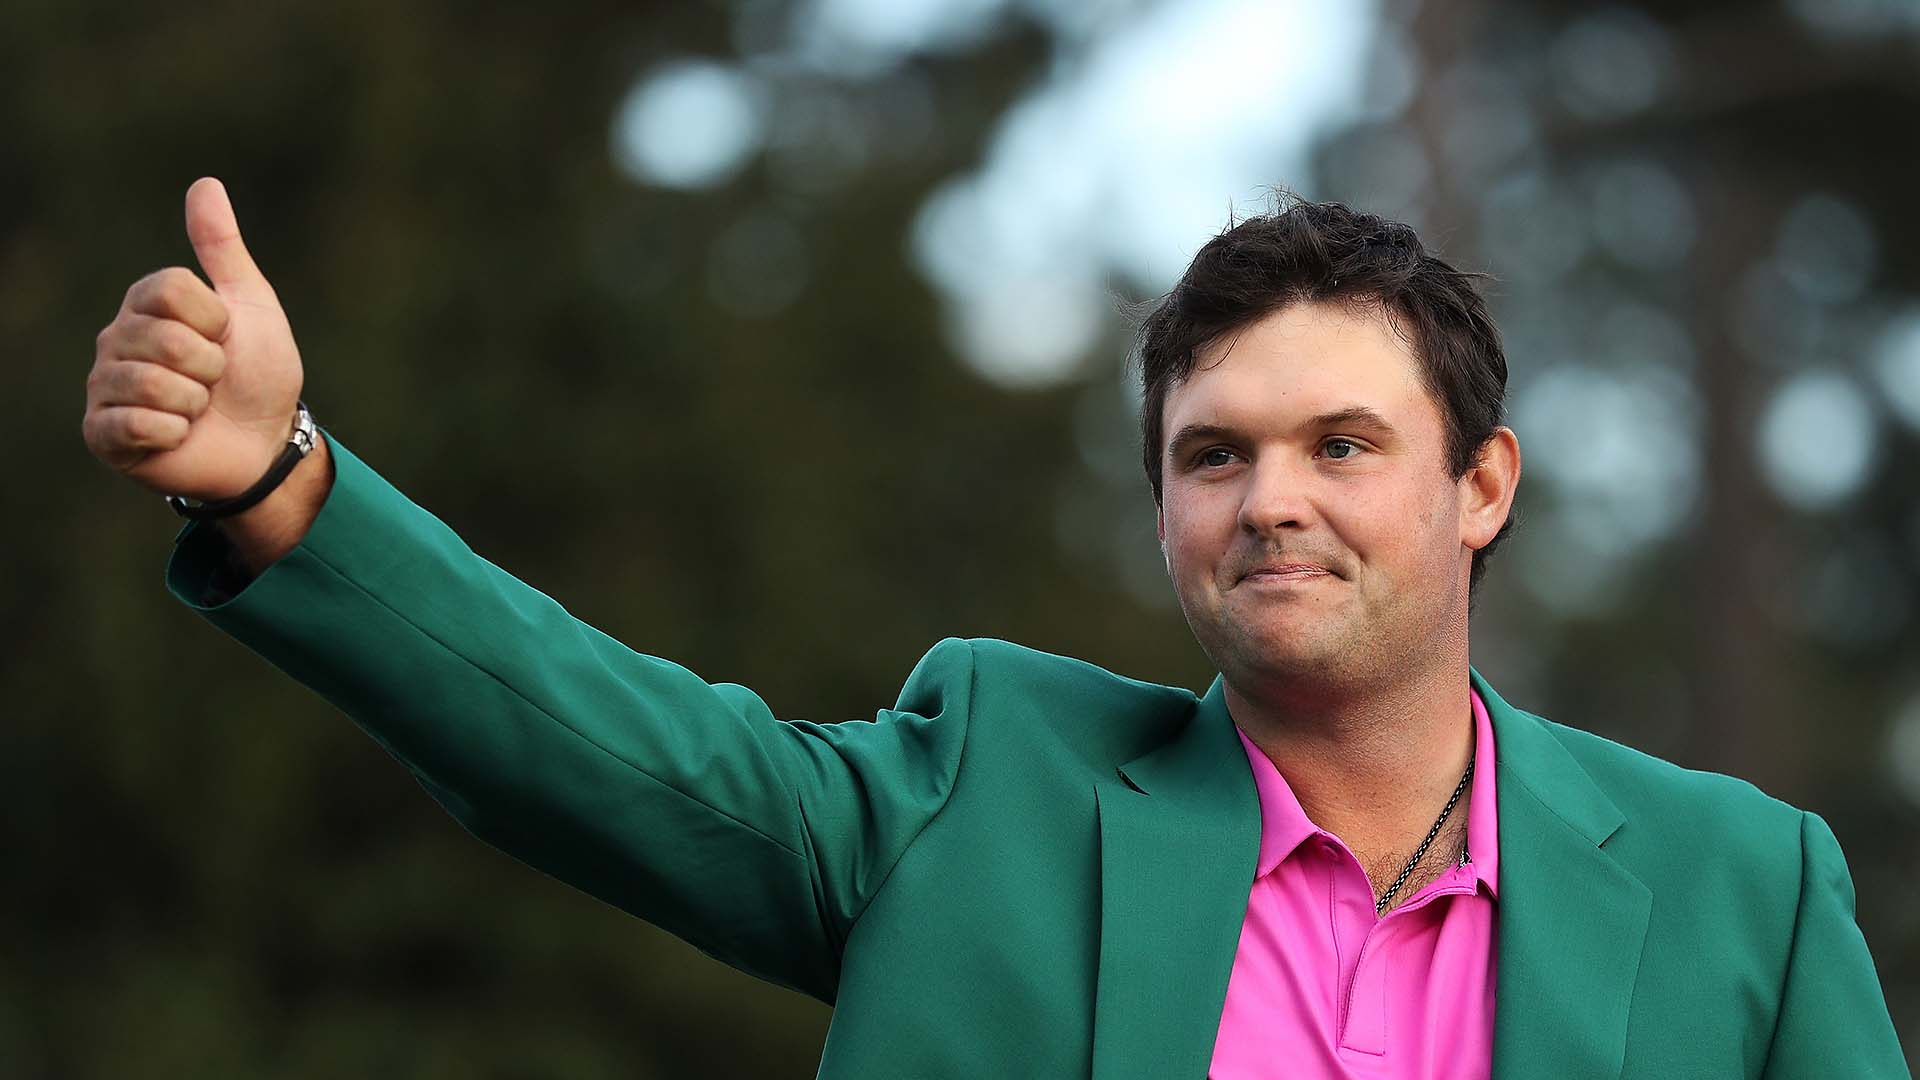 Patrick Reed dismisses notion that he has home course advantage